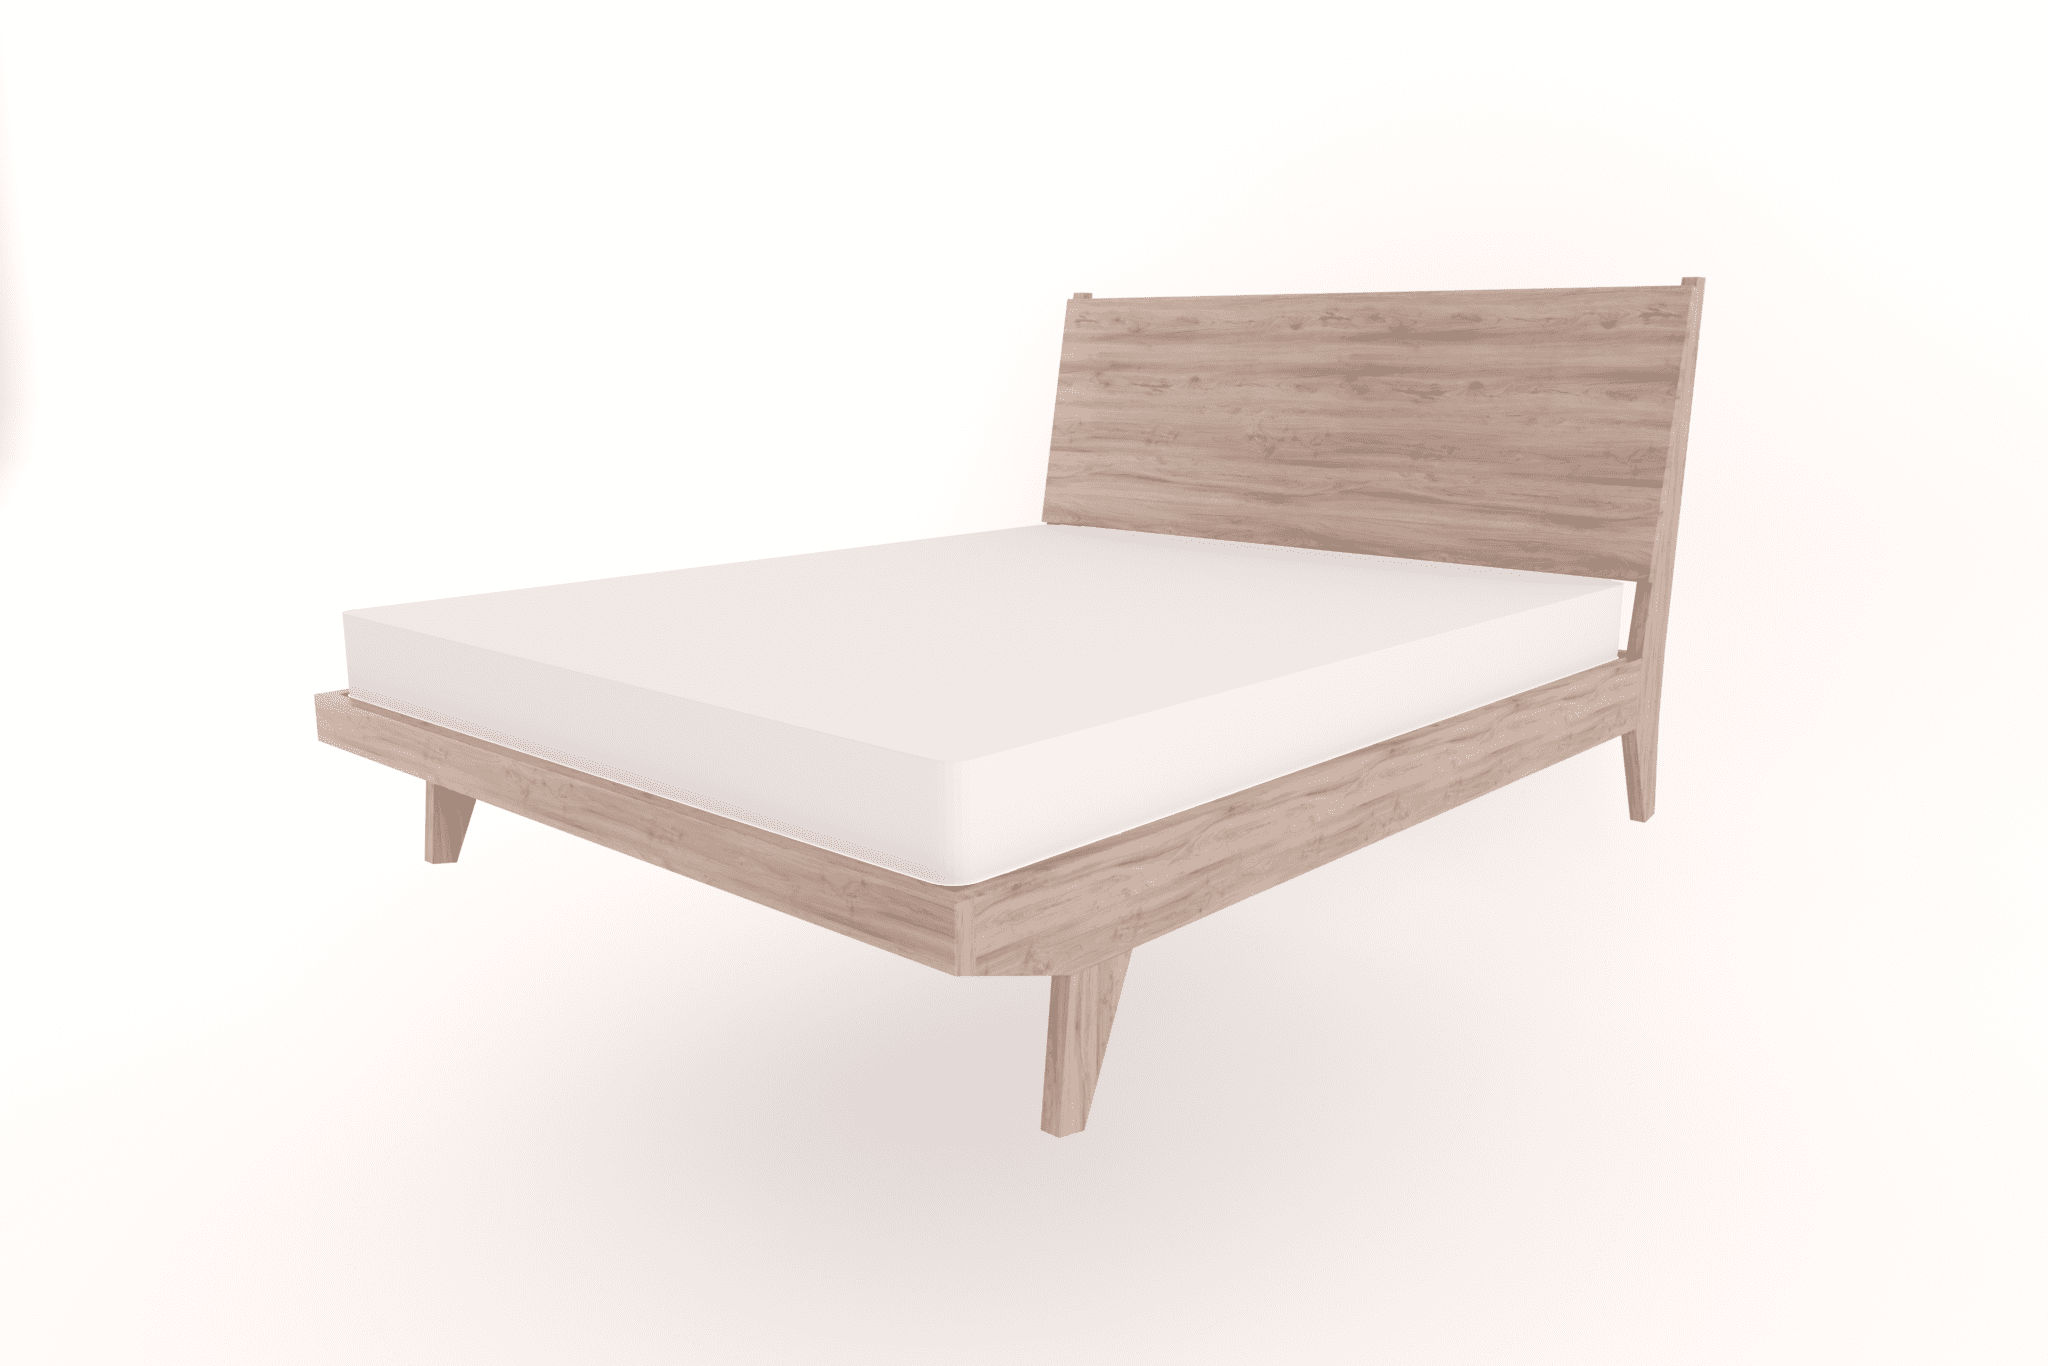 queen sized wooden bed with headboard